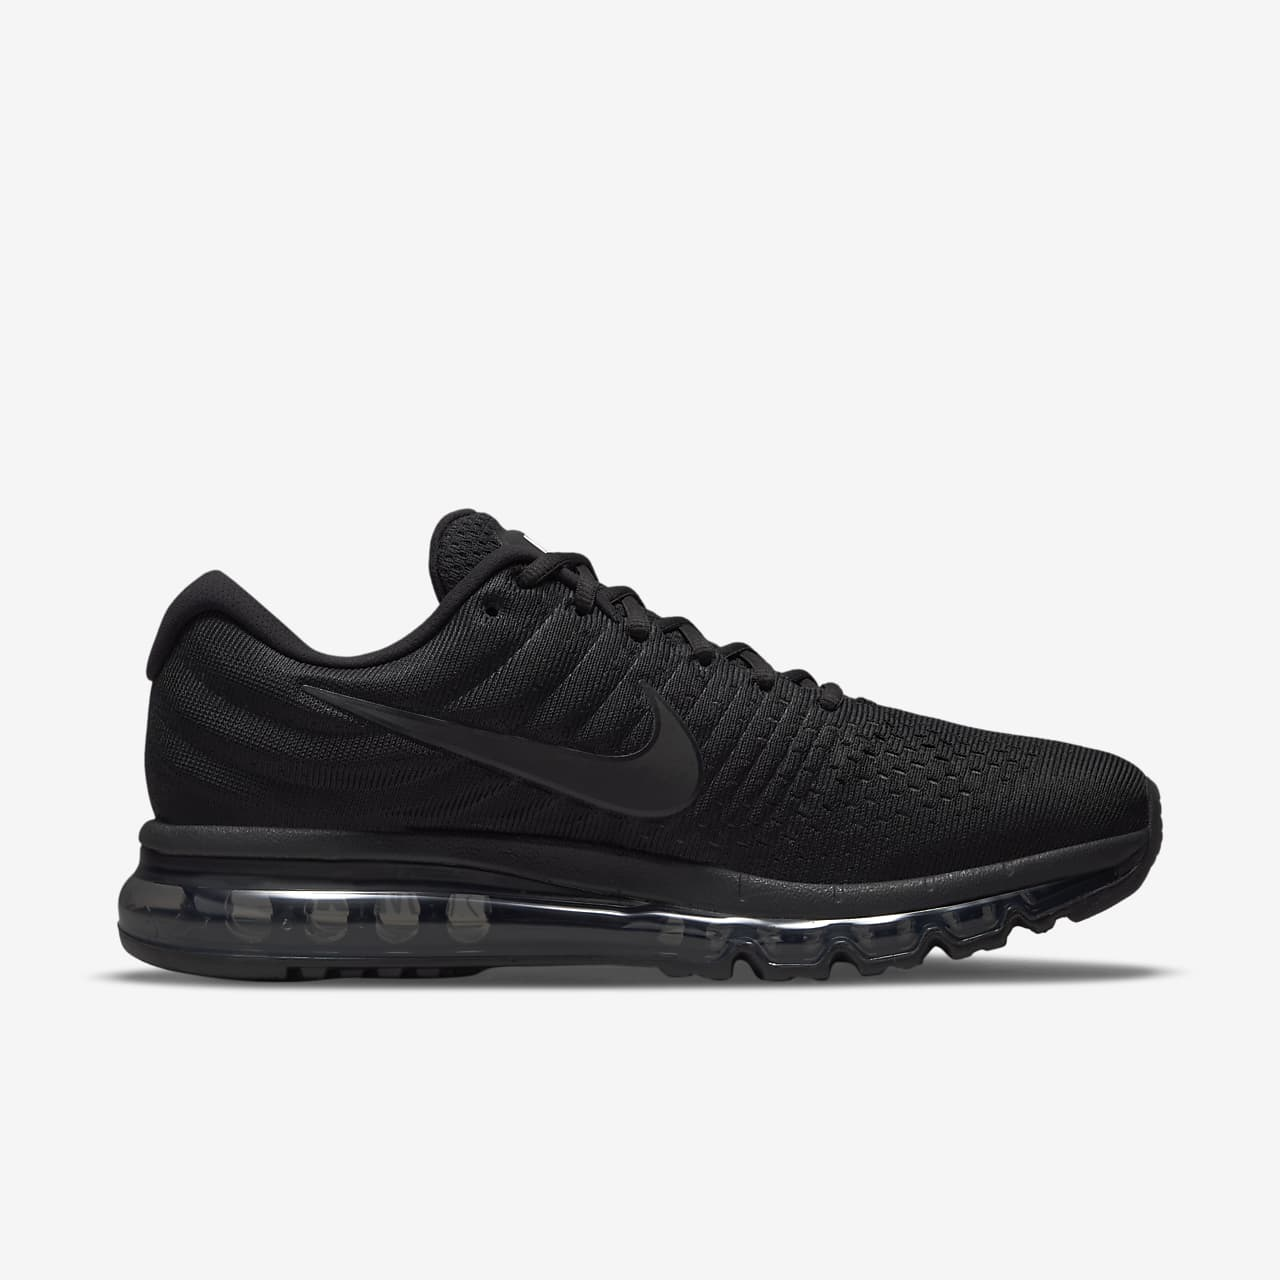 b6726a584a84 Nike Air Max 2017 Men s Shoe. Nike.com EG